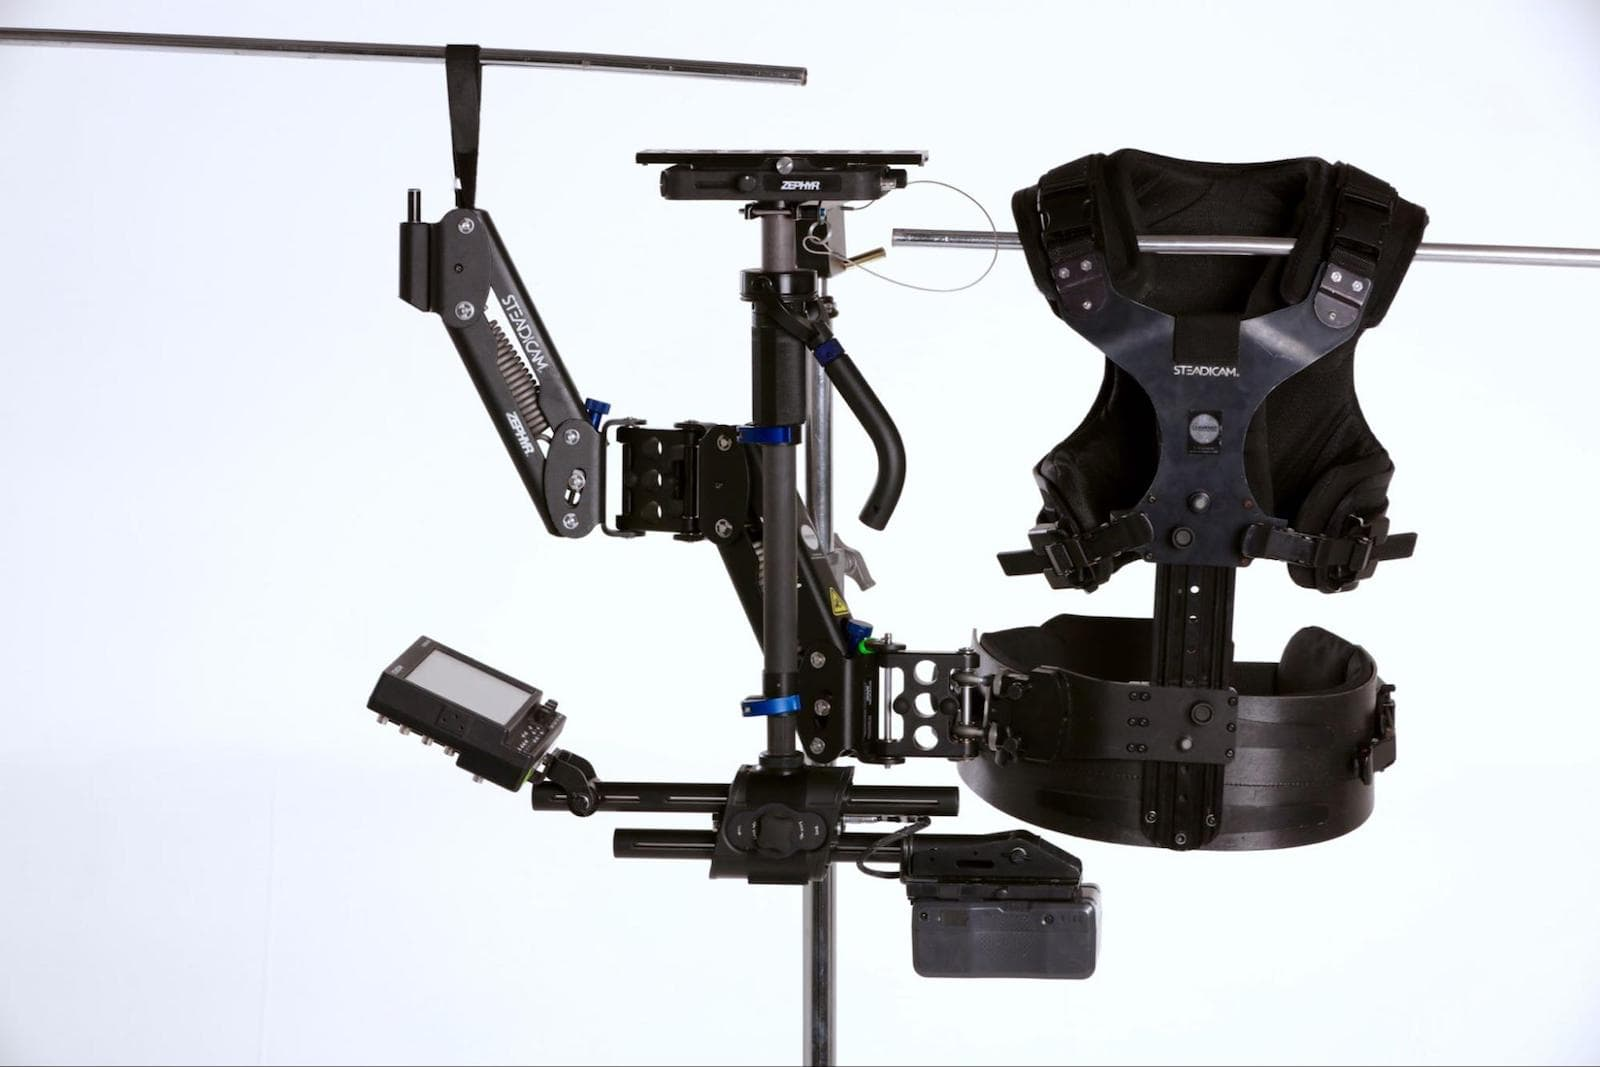 Camera-Stabilizer-Gimbal-Best-Video-Camera-Stabilizers-Tiffen-Steadicam-Zephr-Example